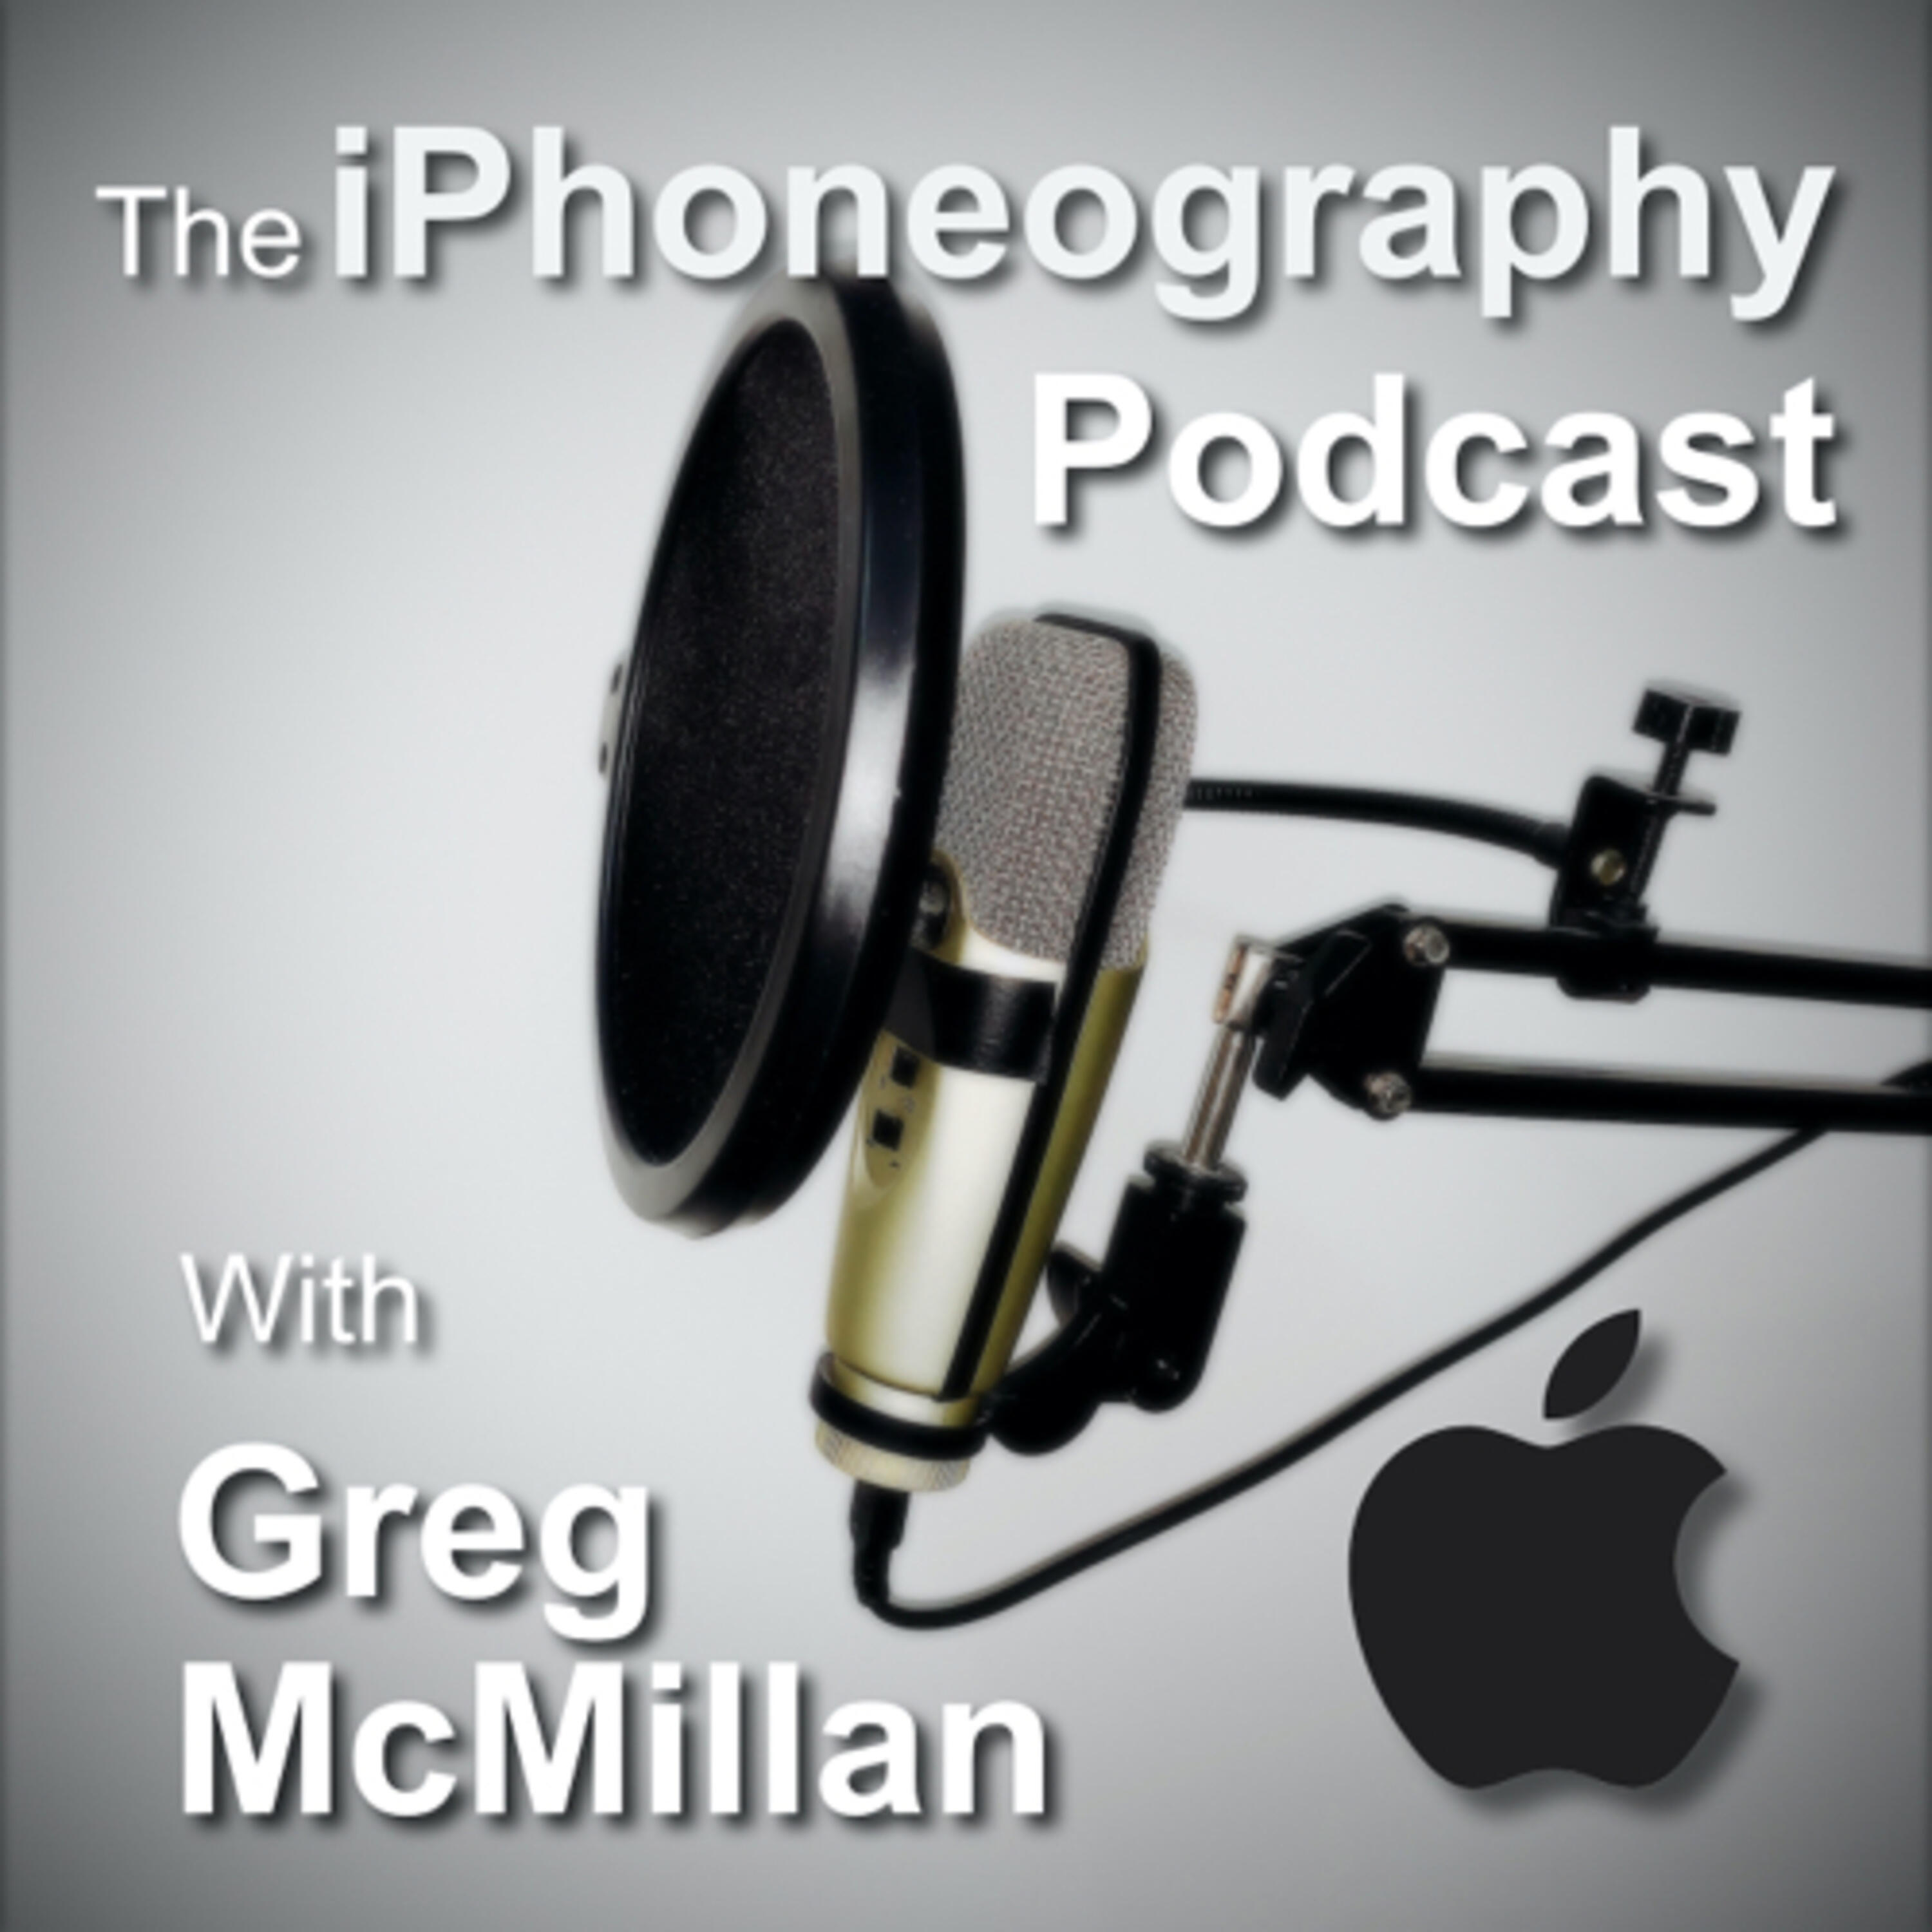 The iPhoneography Podcast